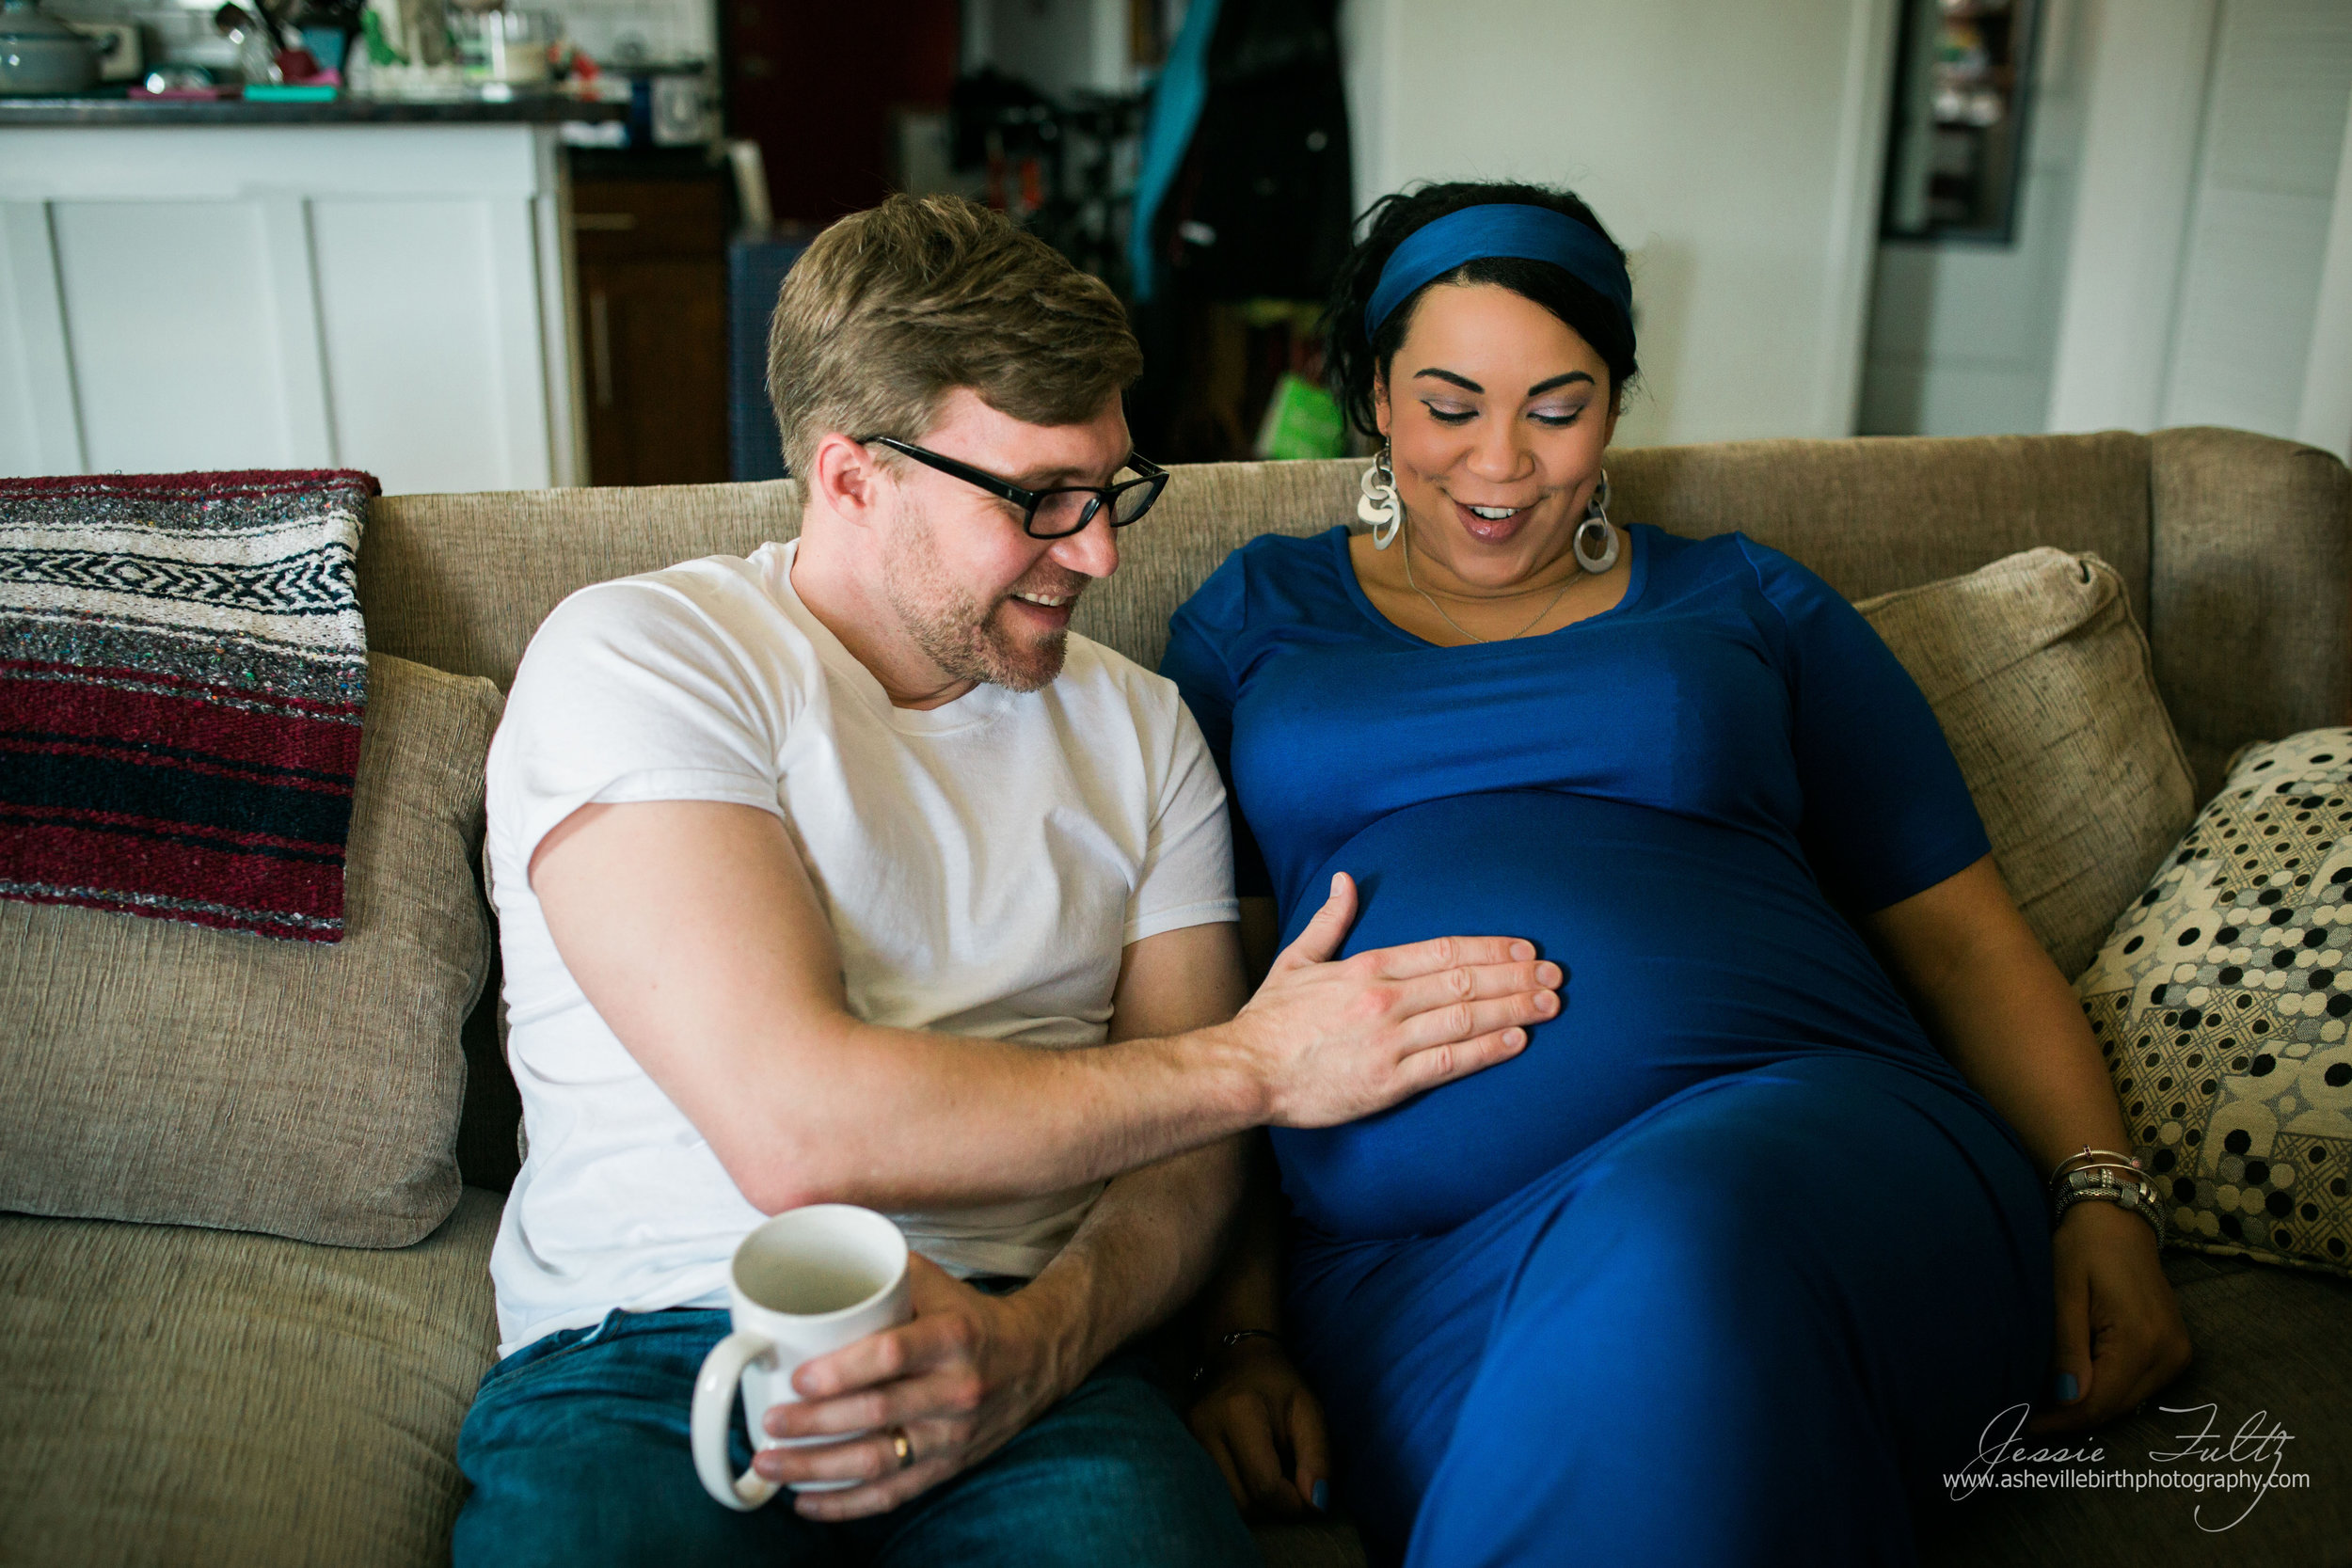 Pregnant woman in a blue dress sitting on the couch while her husband rubs her belly